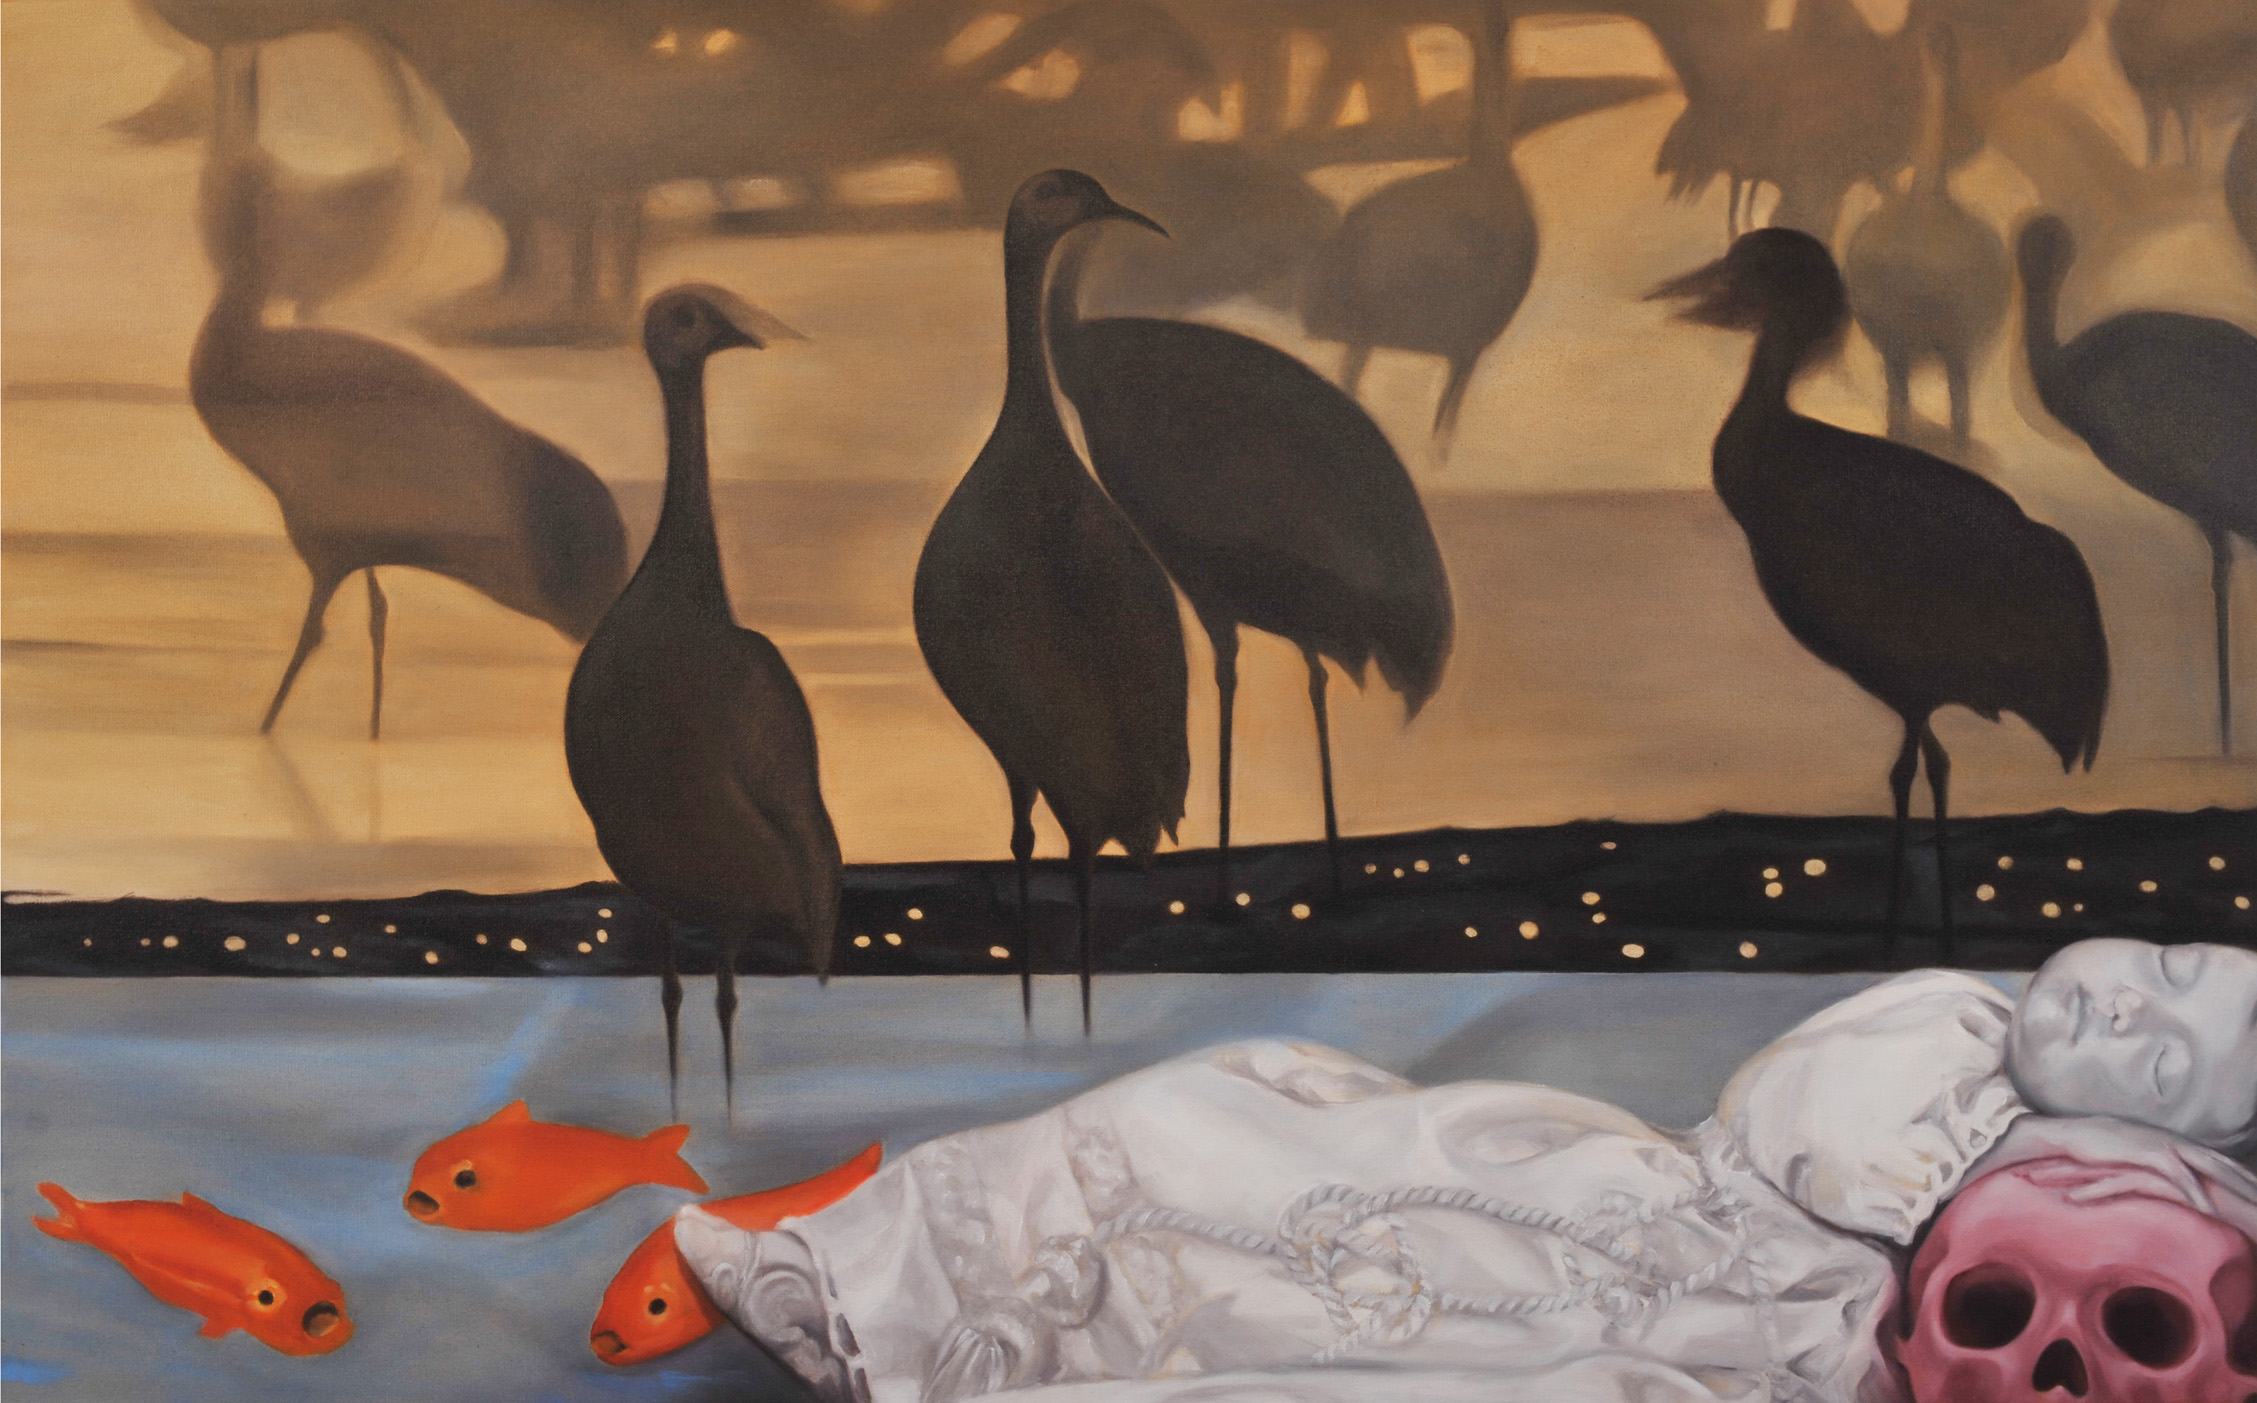 Still Wish You Were Here artwork by Pilar Acevedo - art listed for sale on Artplode